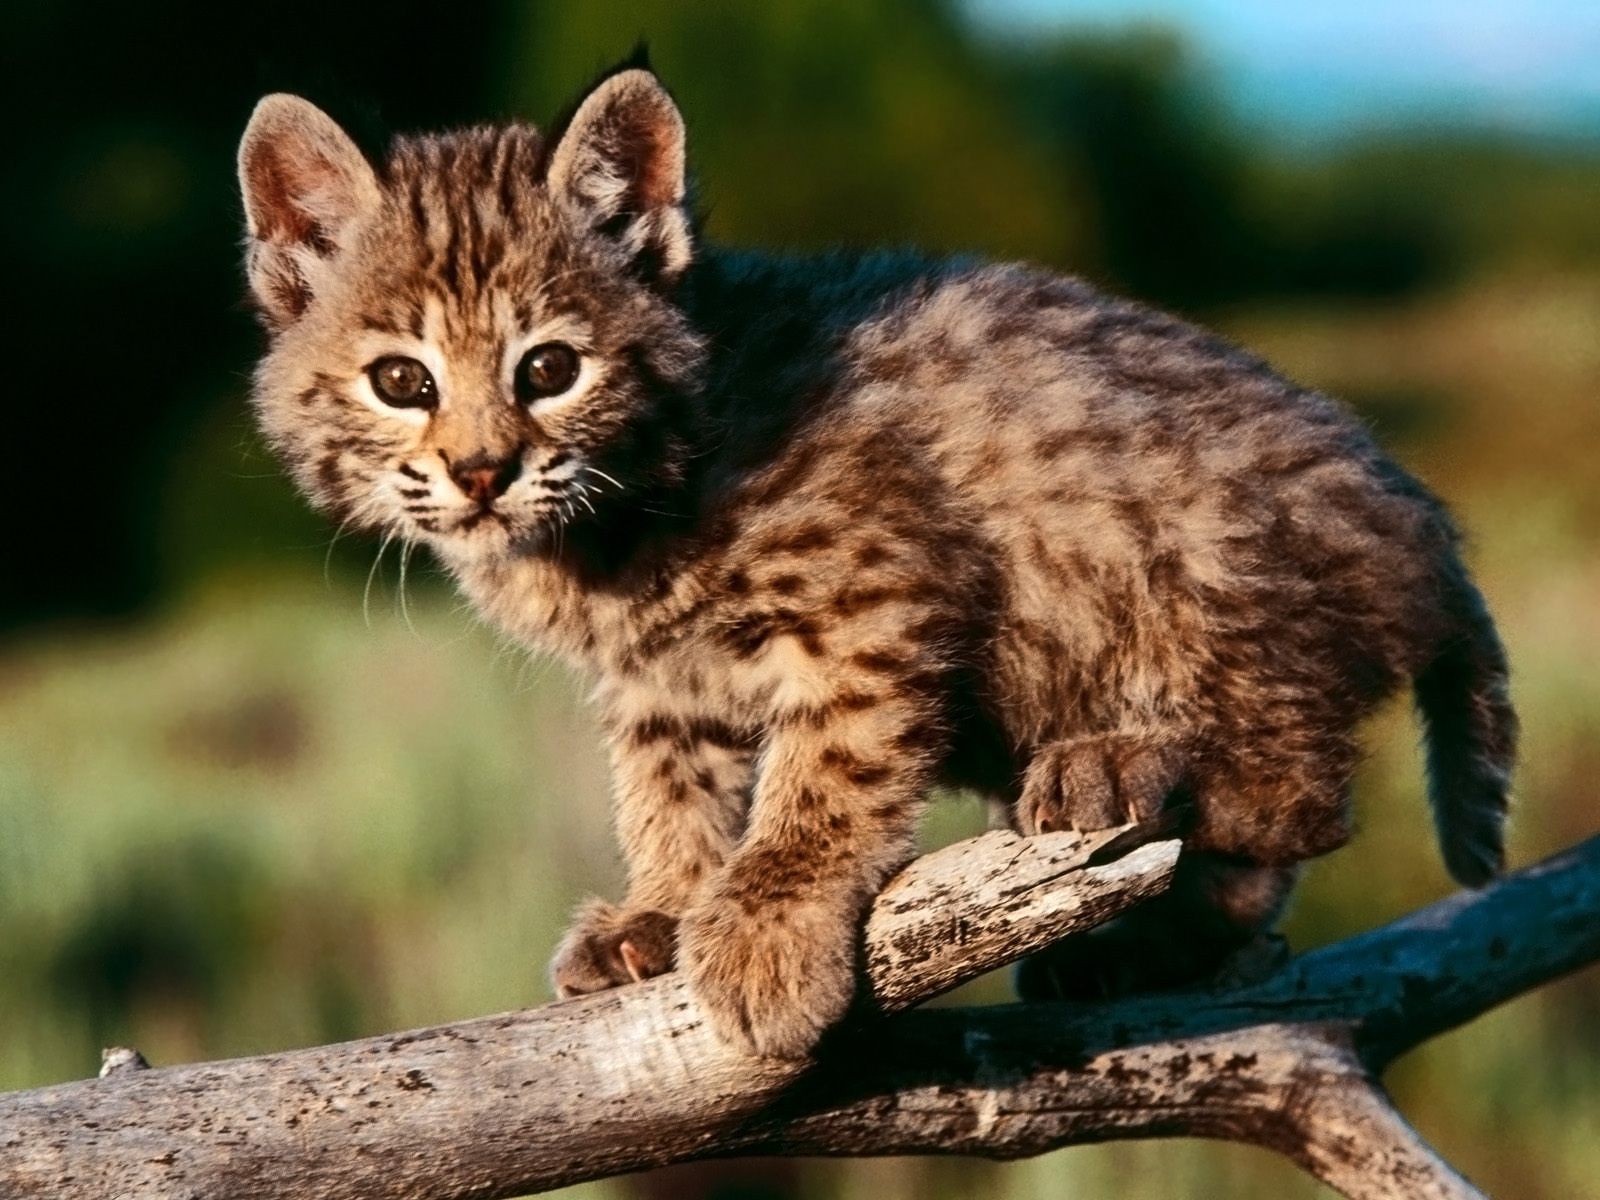 Cute Kittens images Cute Wallpapers HD wallpaper and background photos 1600x1200